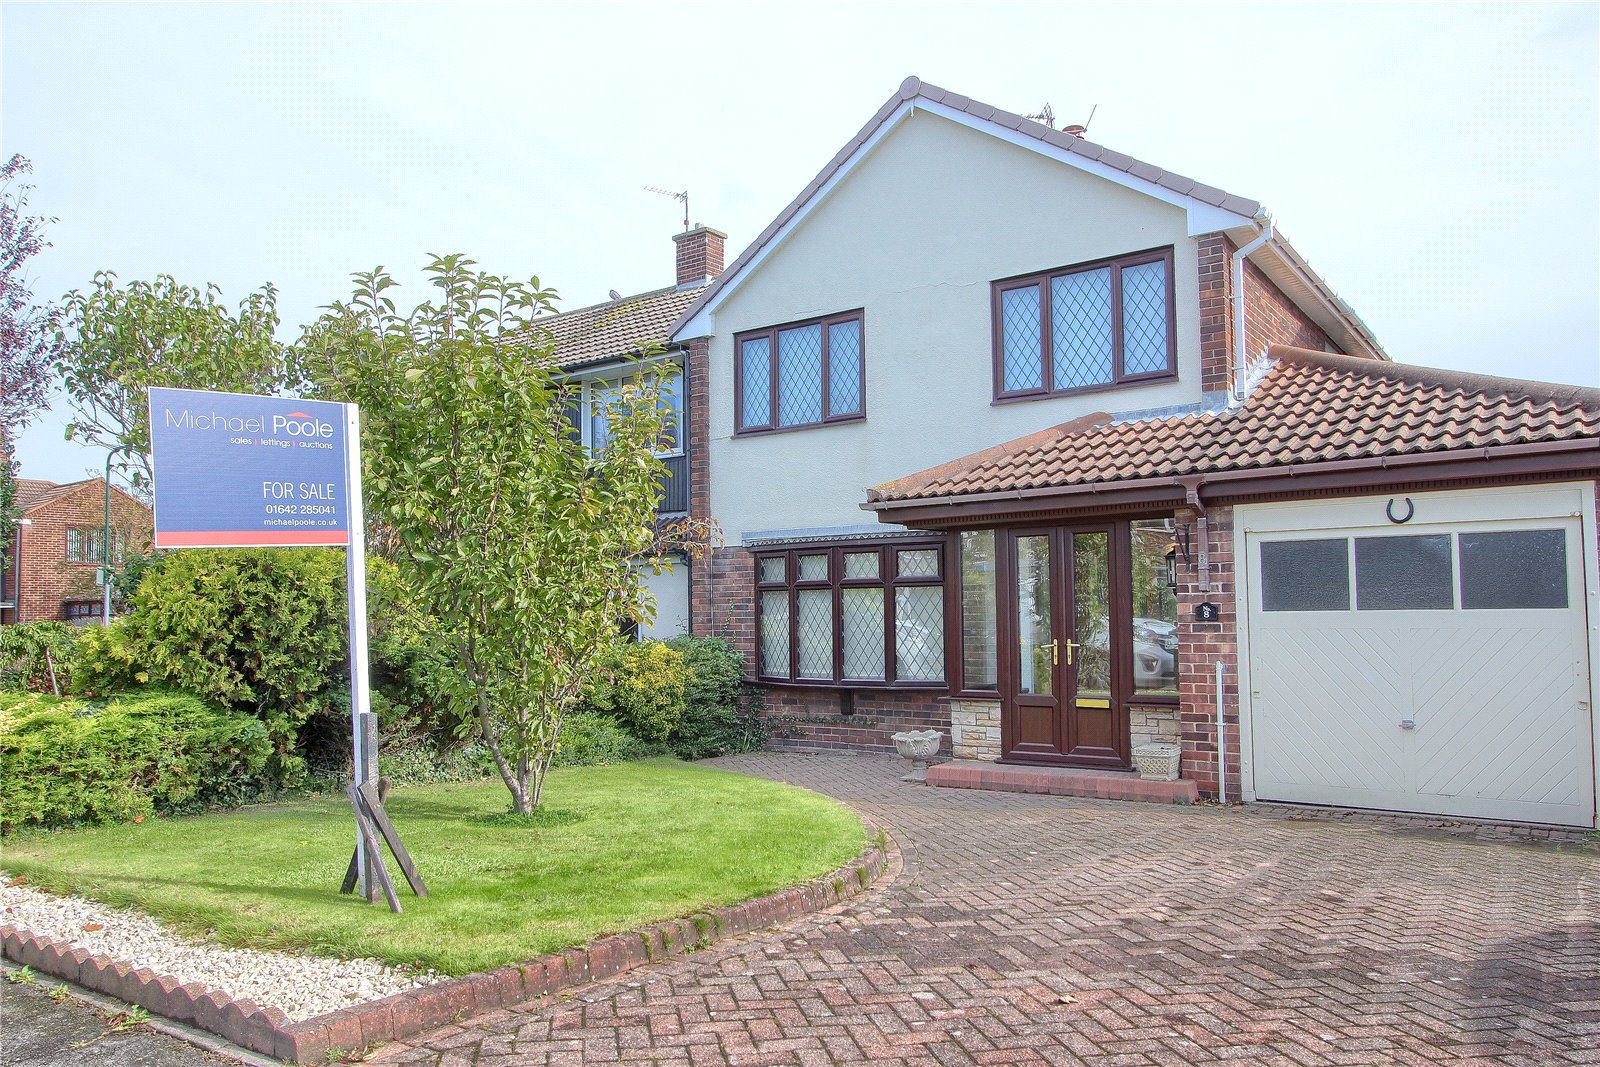 3 bed house for sale in Fir Rigg Drive, Marske-by-the-Sea  - Property Image 1